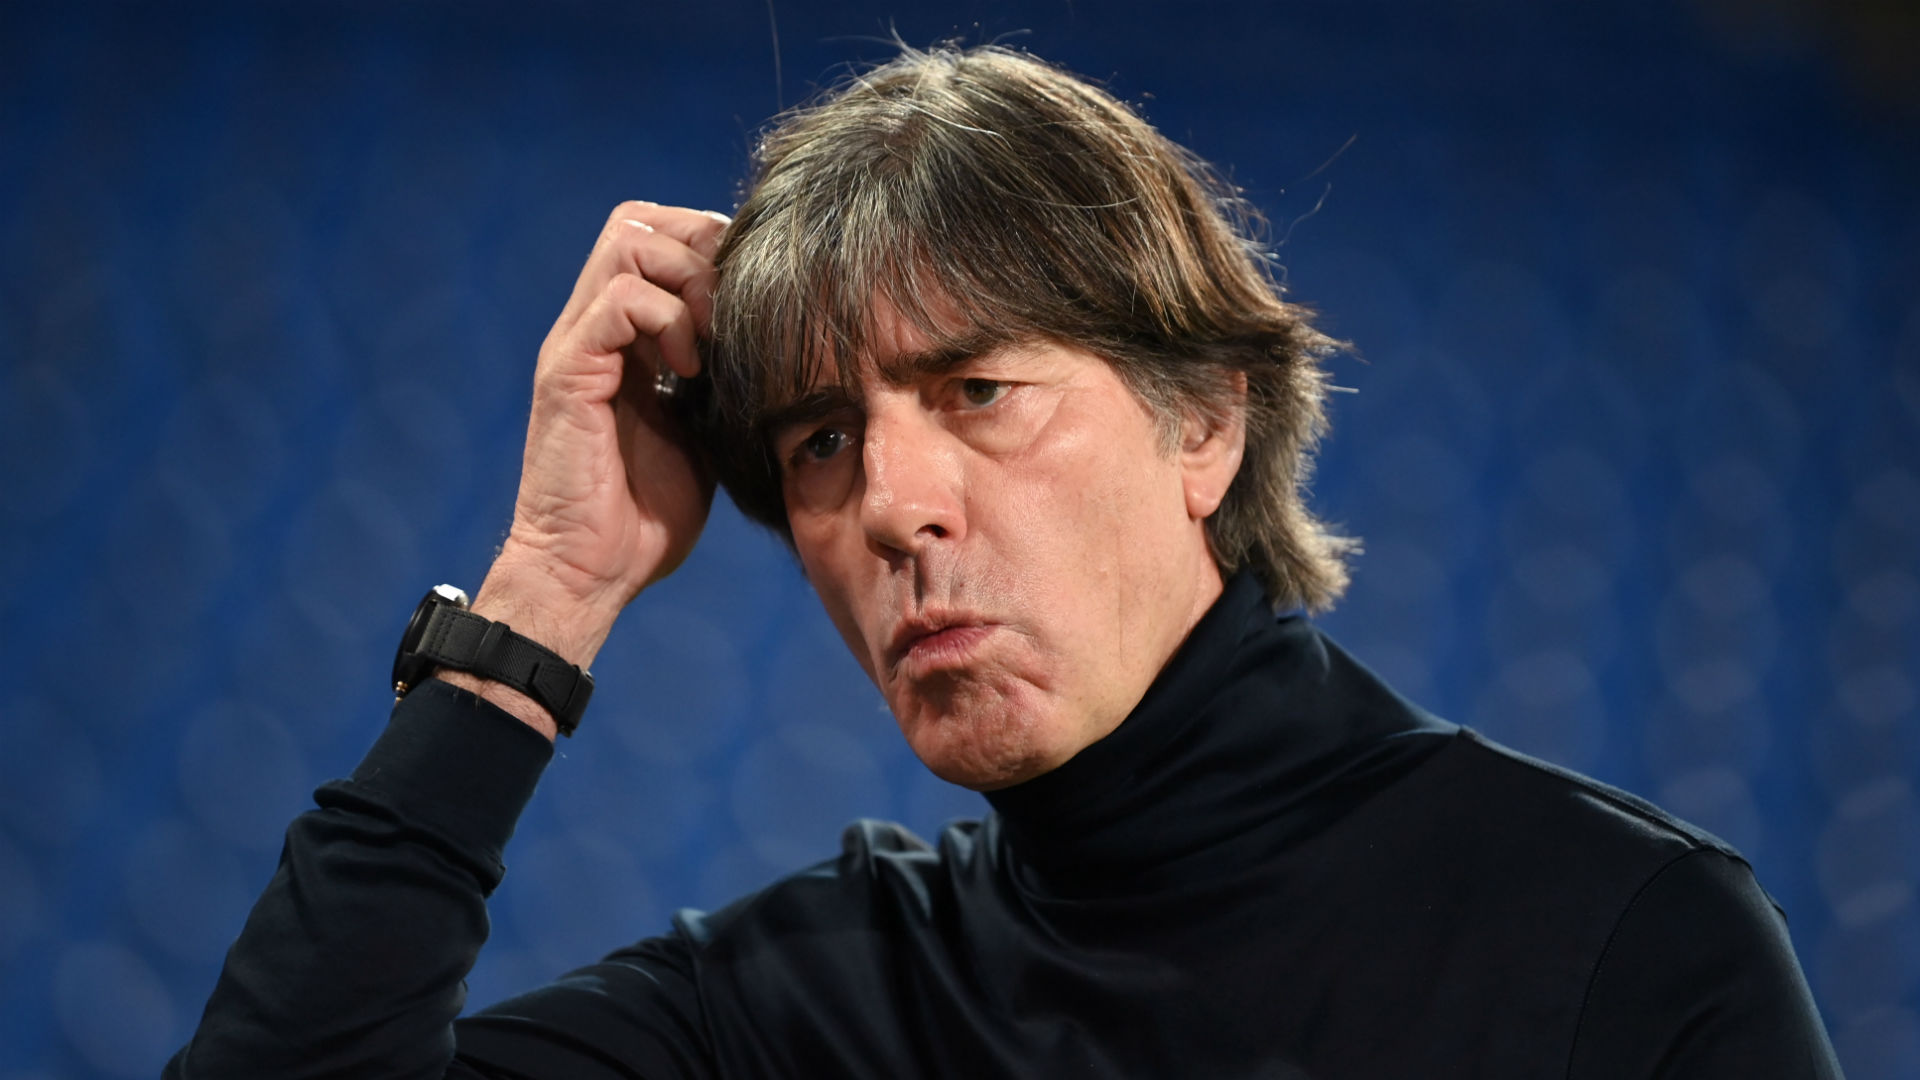 Germany coach Low does refutes LaLiga speculation